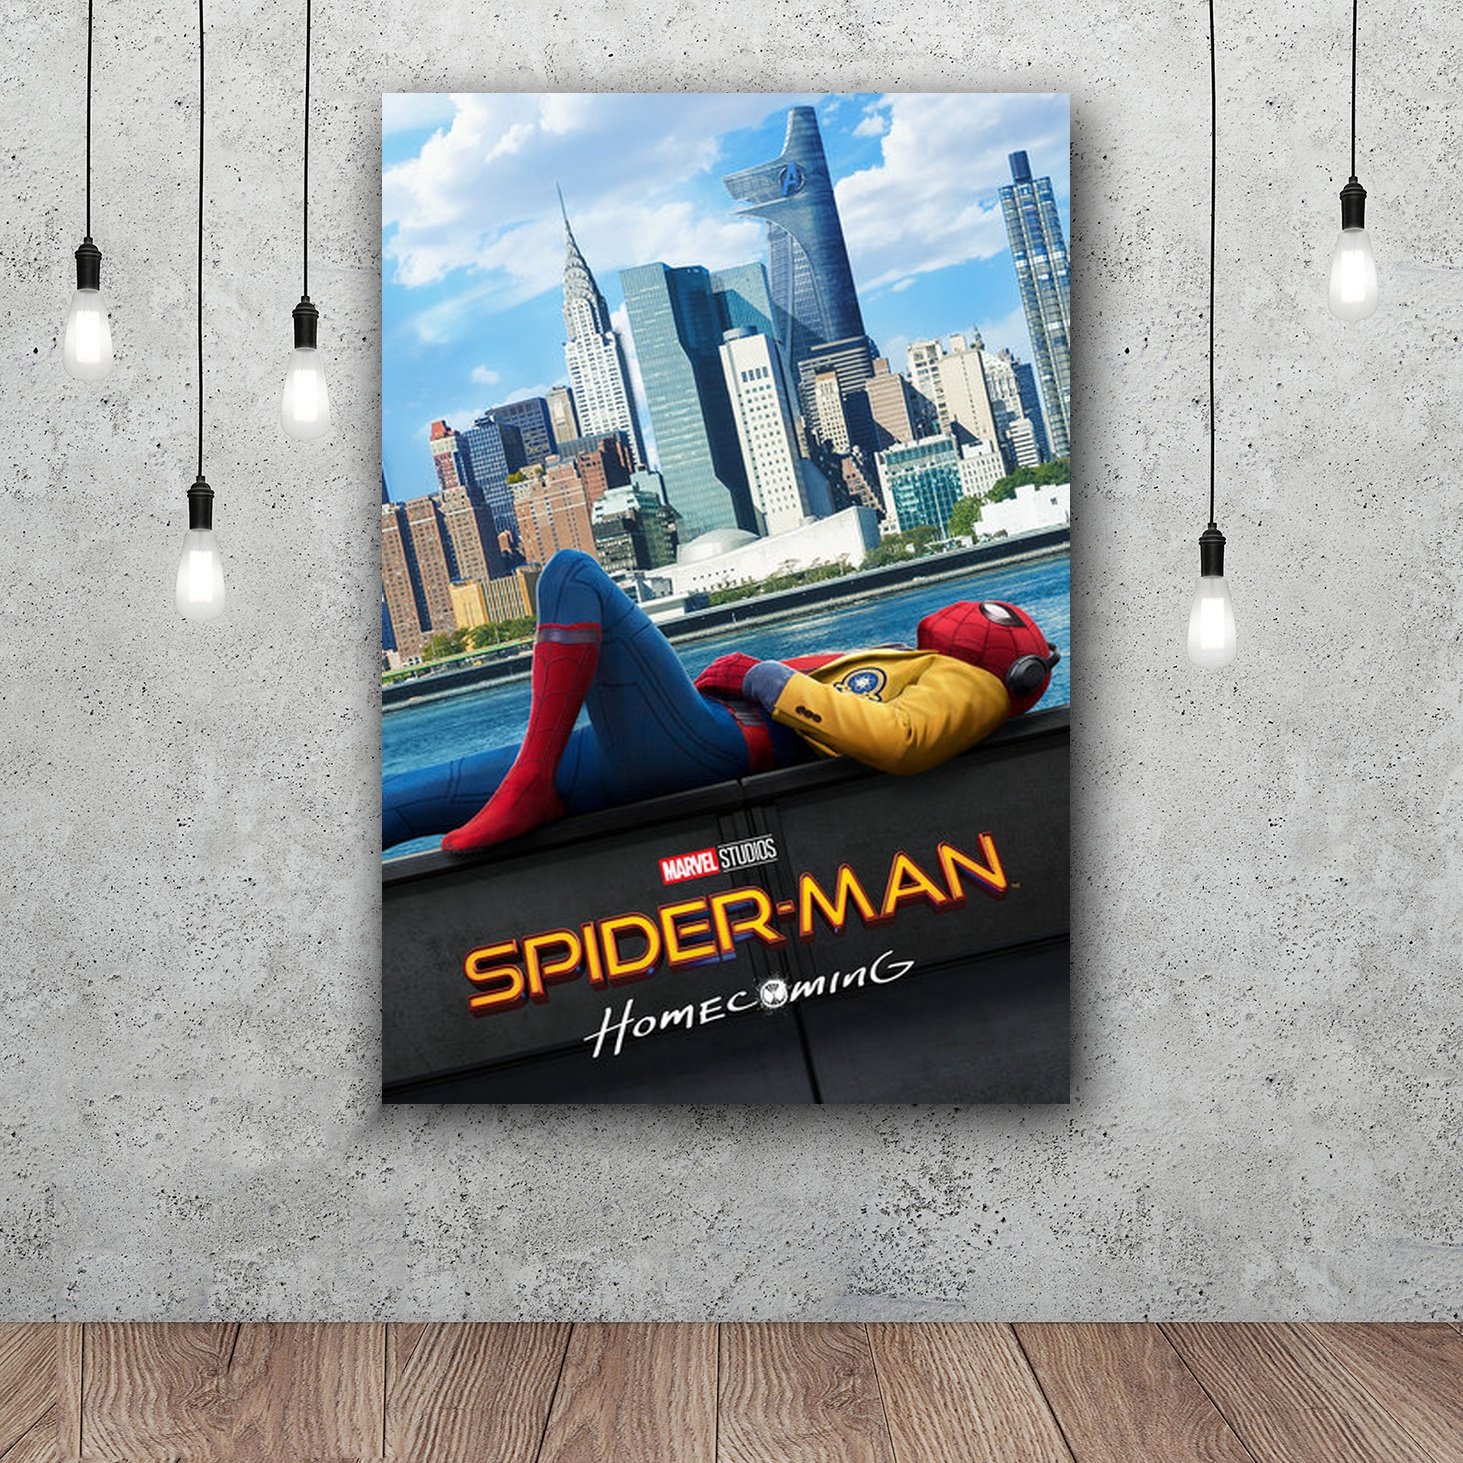 SPIDERMAN HOMECOMING Tom Holland Superhero Movie Canvas Or Silk Poster 12x18 24x36 inch